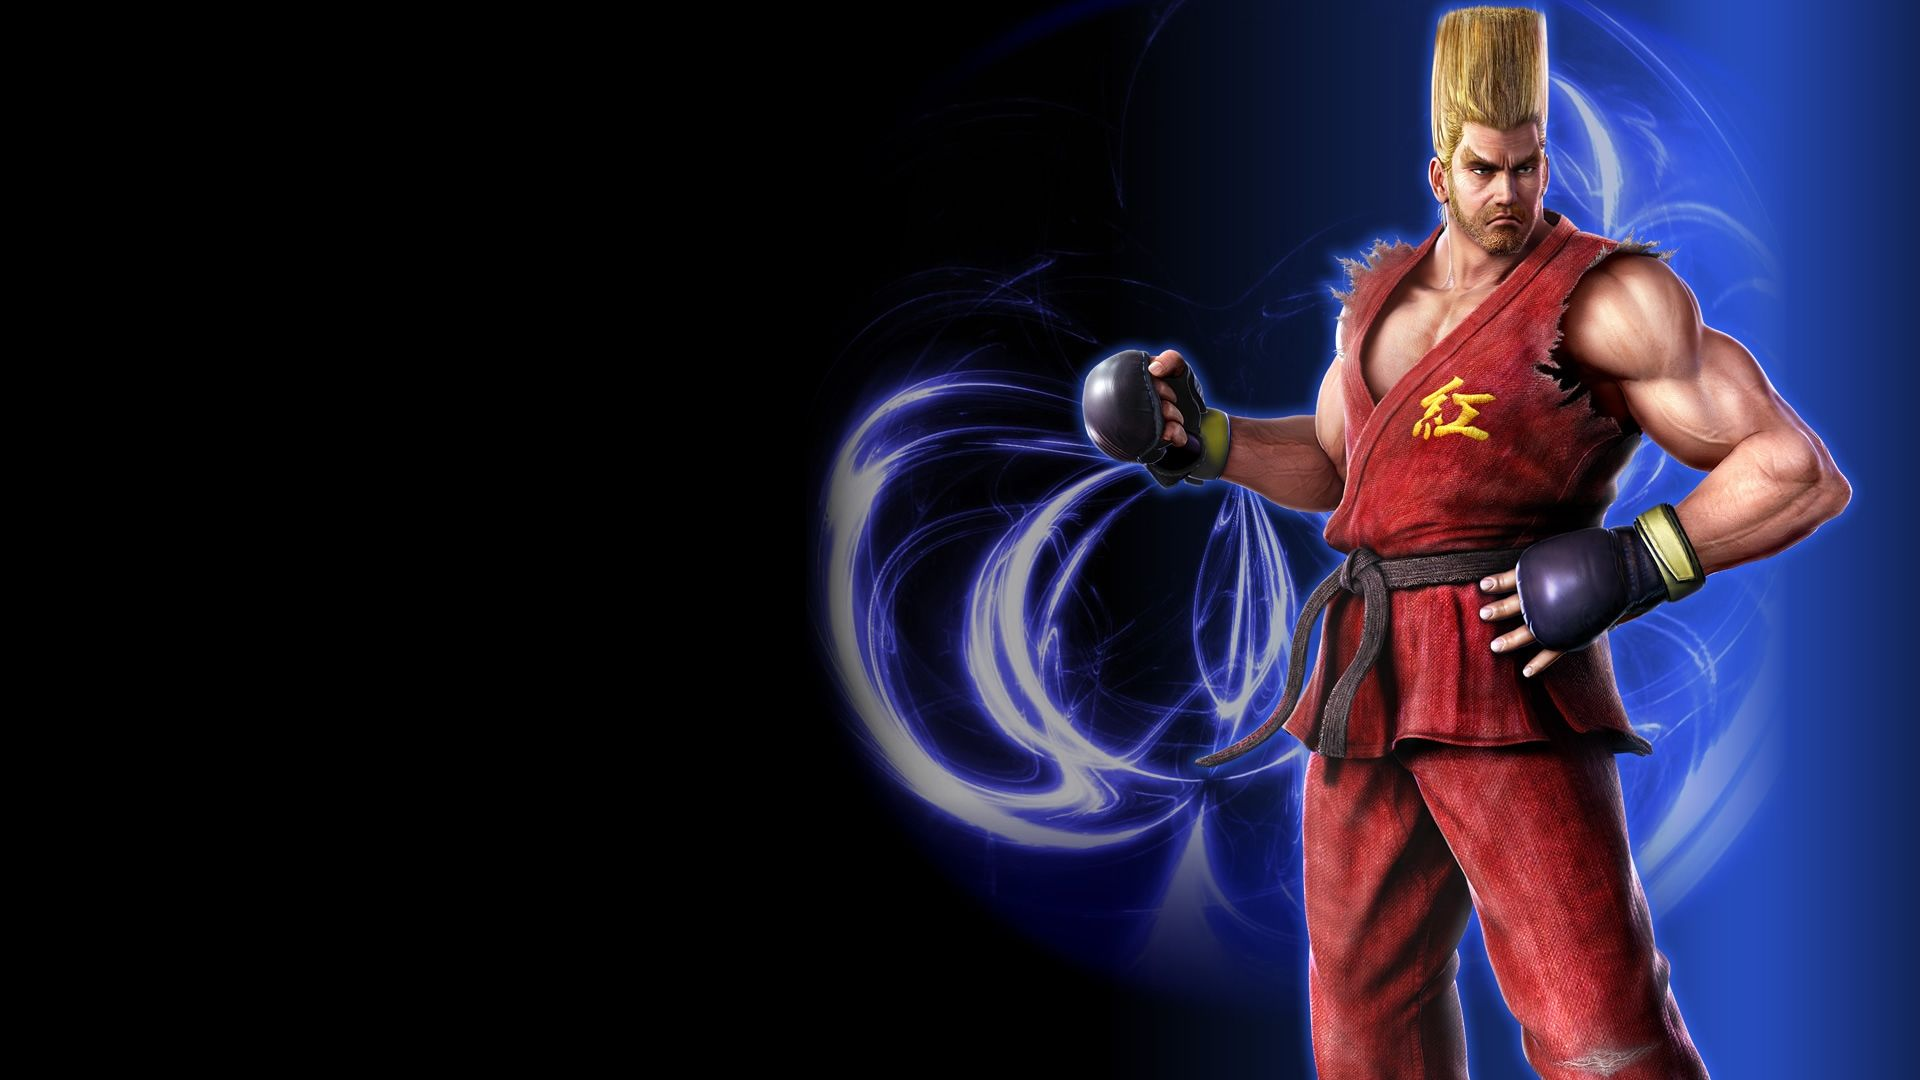 1920x1080 Hd Wallpaper Of Paul Phoenix Tekken 7 Fated Retribution Video Game Tekken 7 Paul Favorite Character